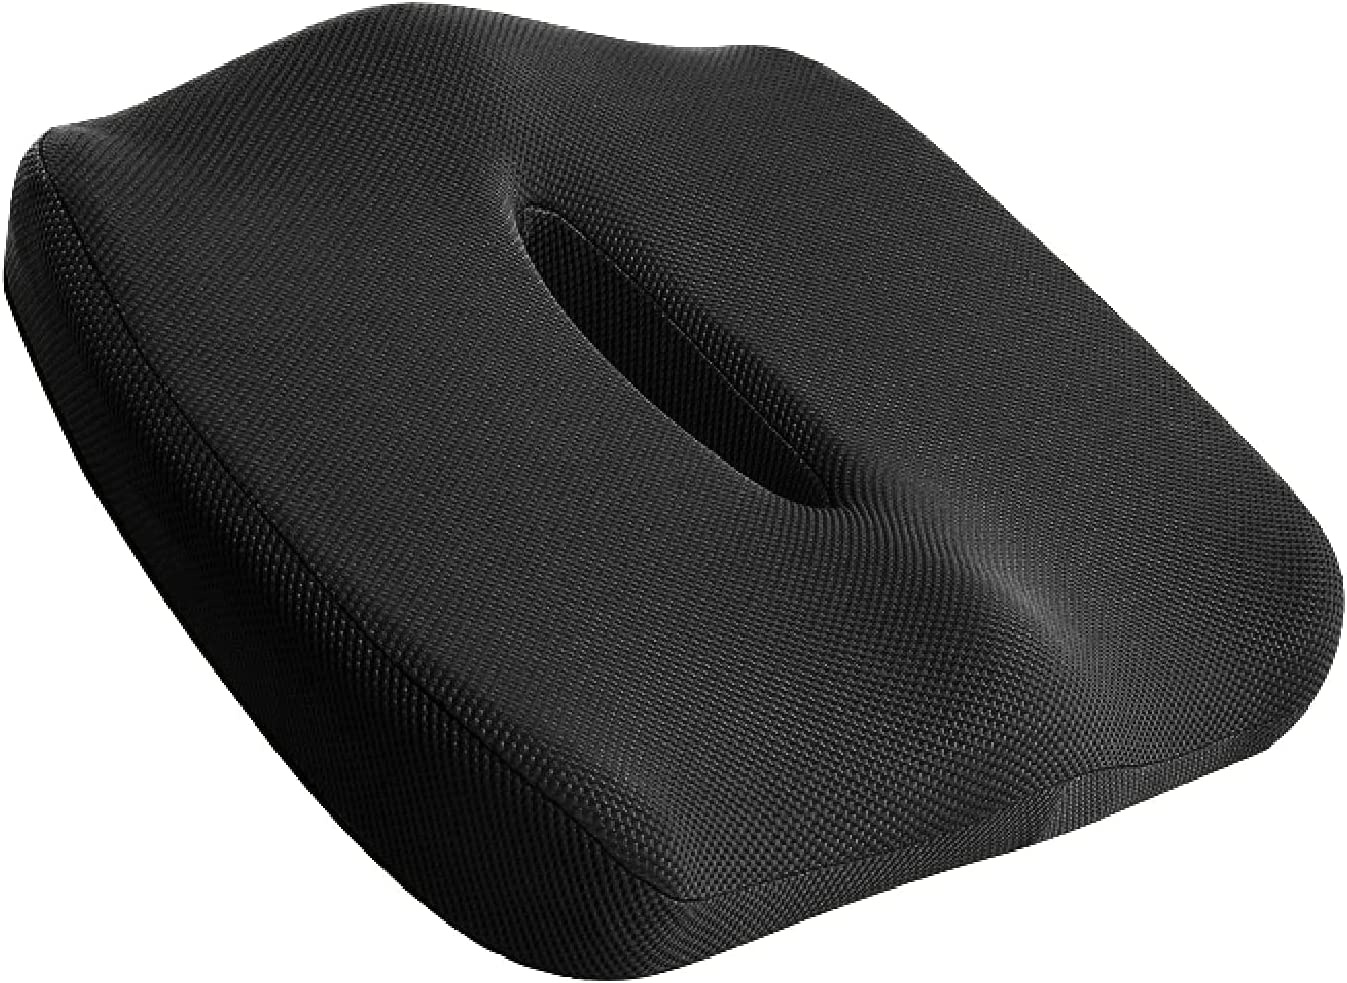 Max 41% OFF Seat Cushion for Attention brand Chair - Cha Foam Memory Office